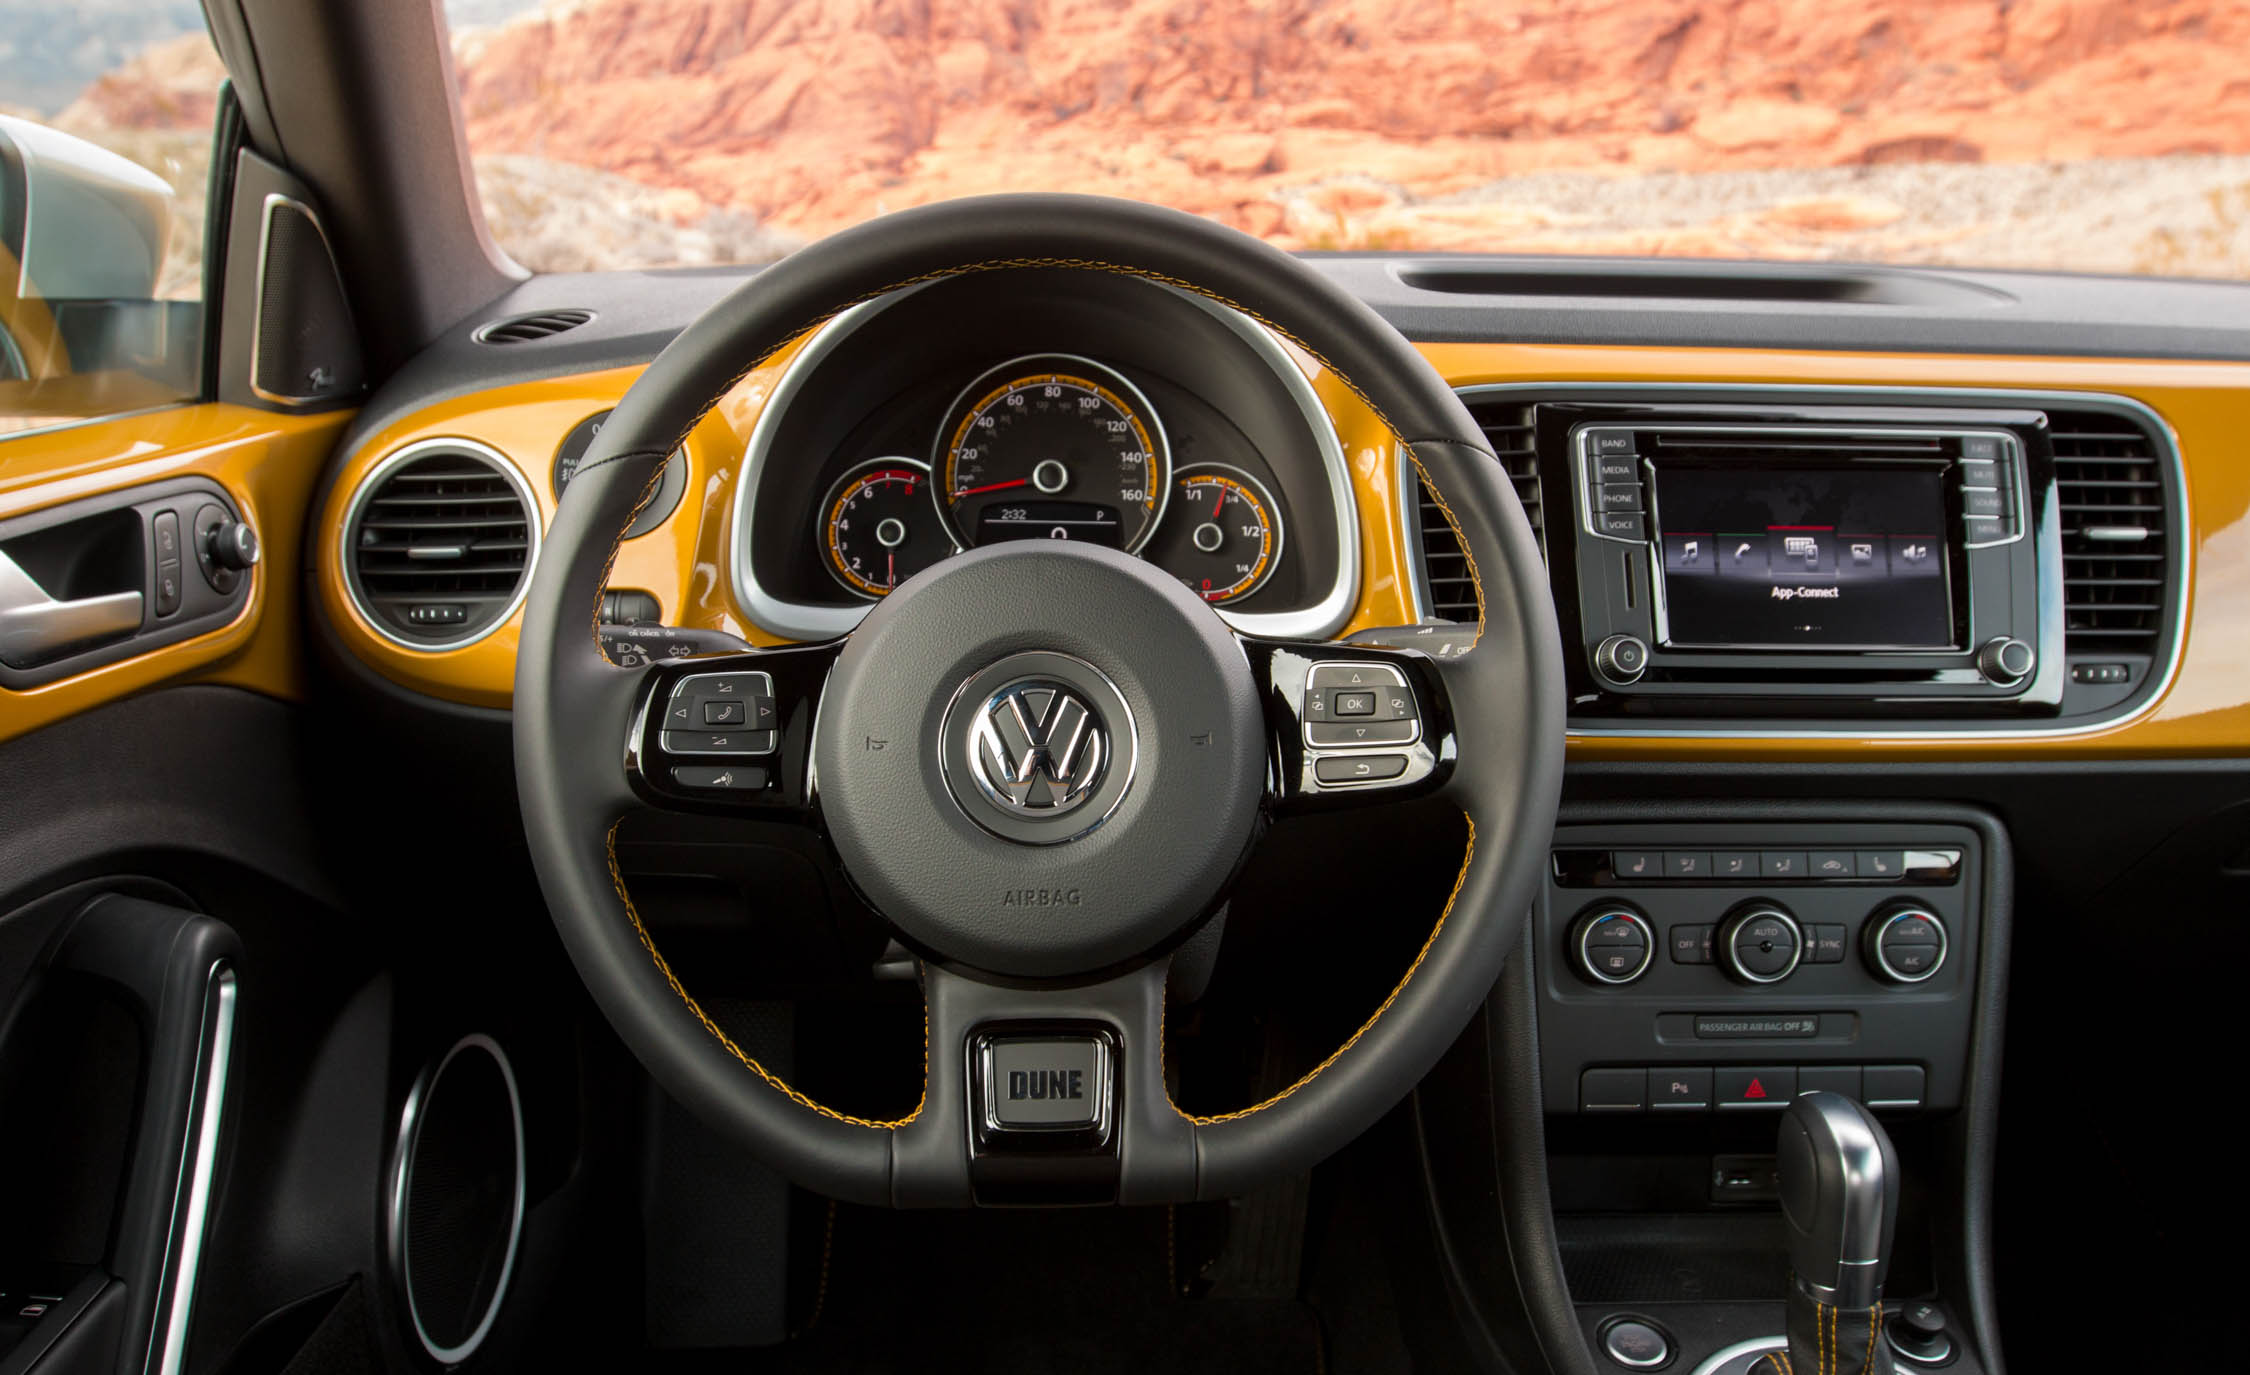 2016 Volkswagen Beetle Dune Interior Steering And Speedometer (Photo 29 of 32)